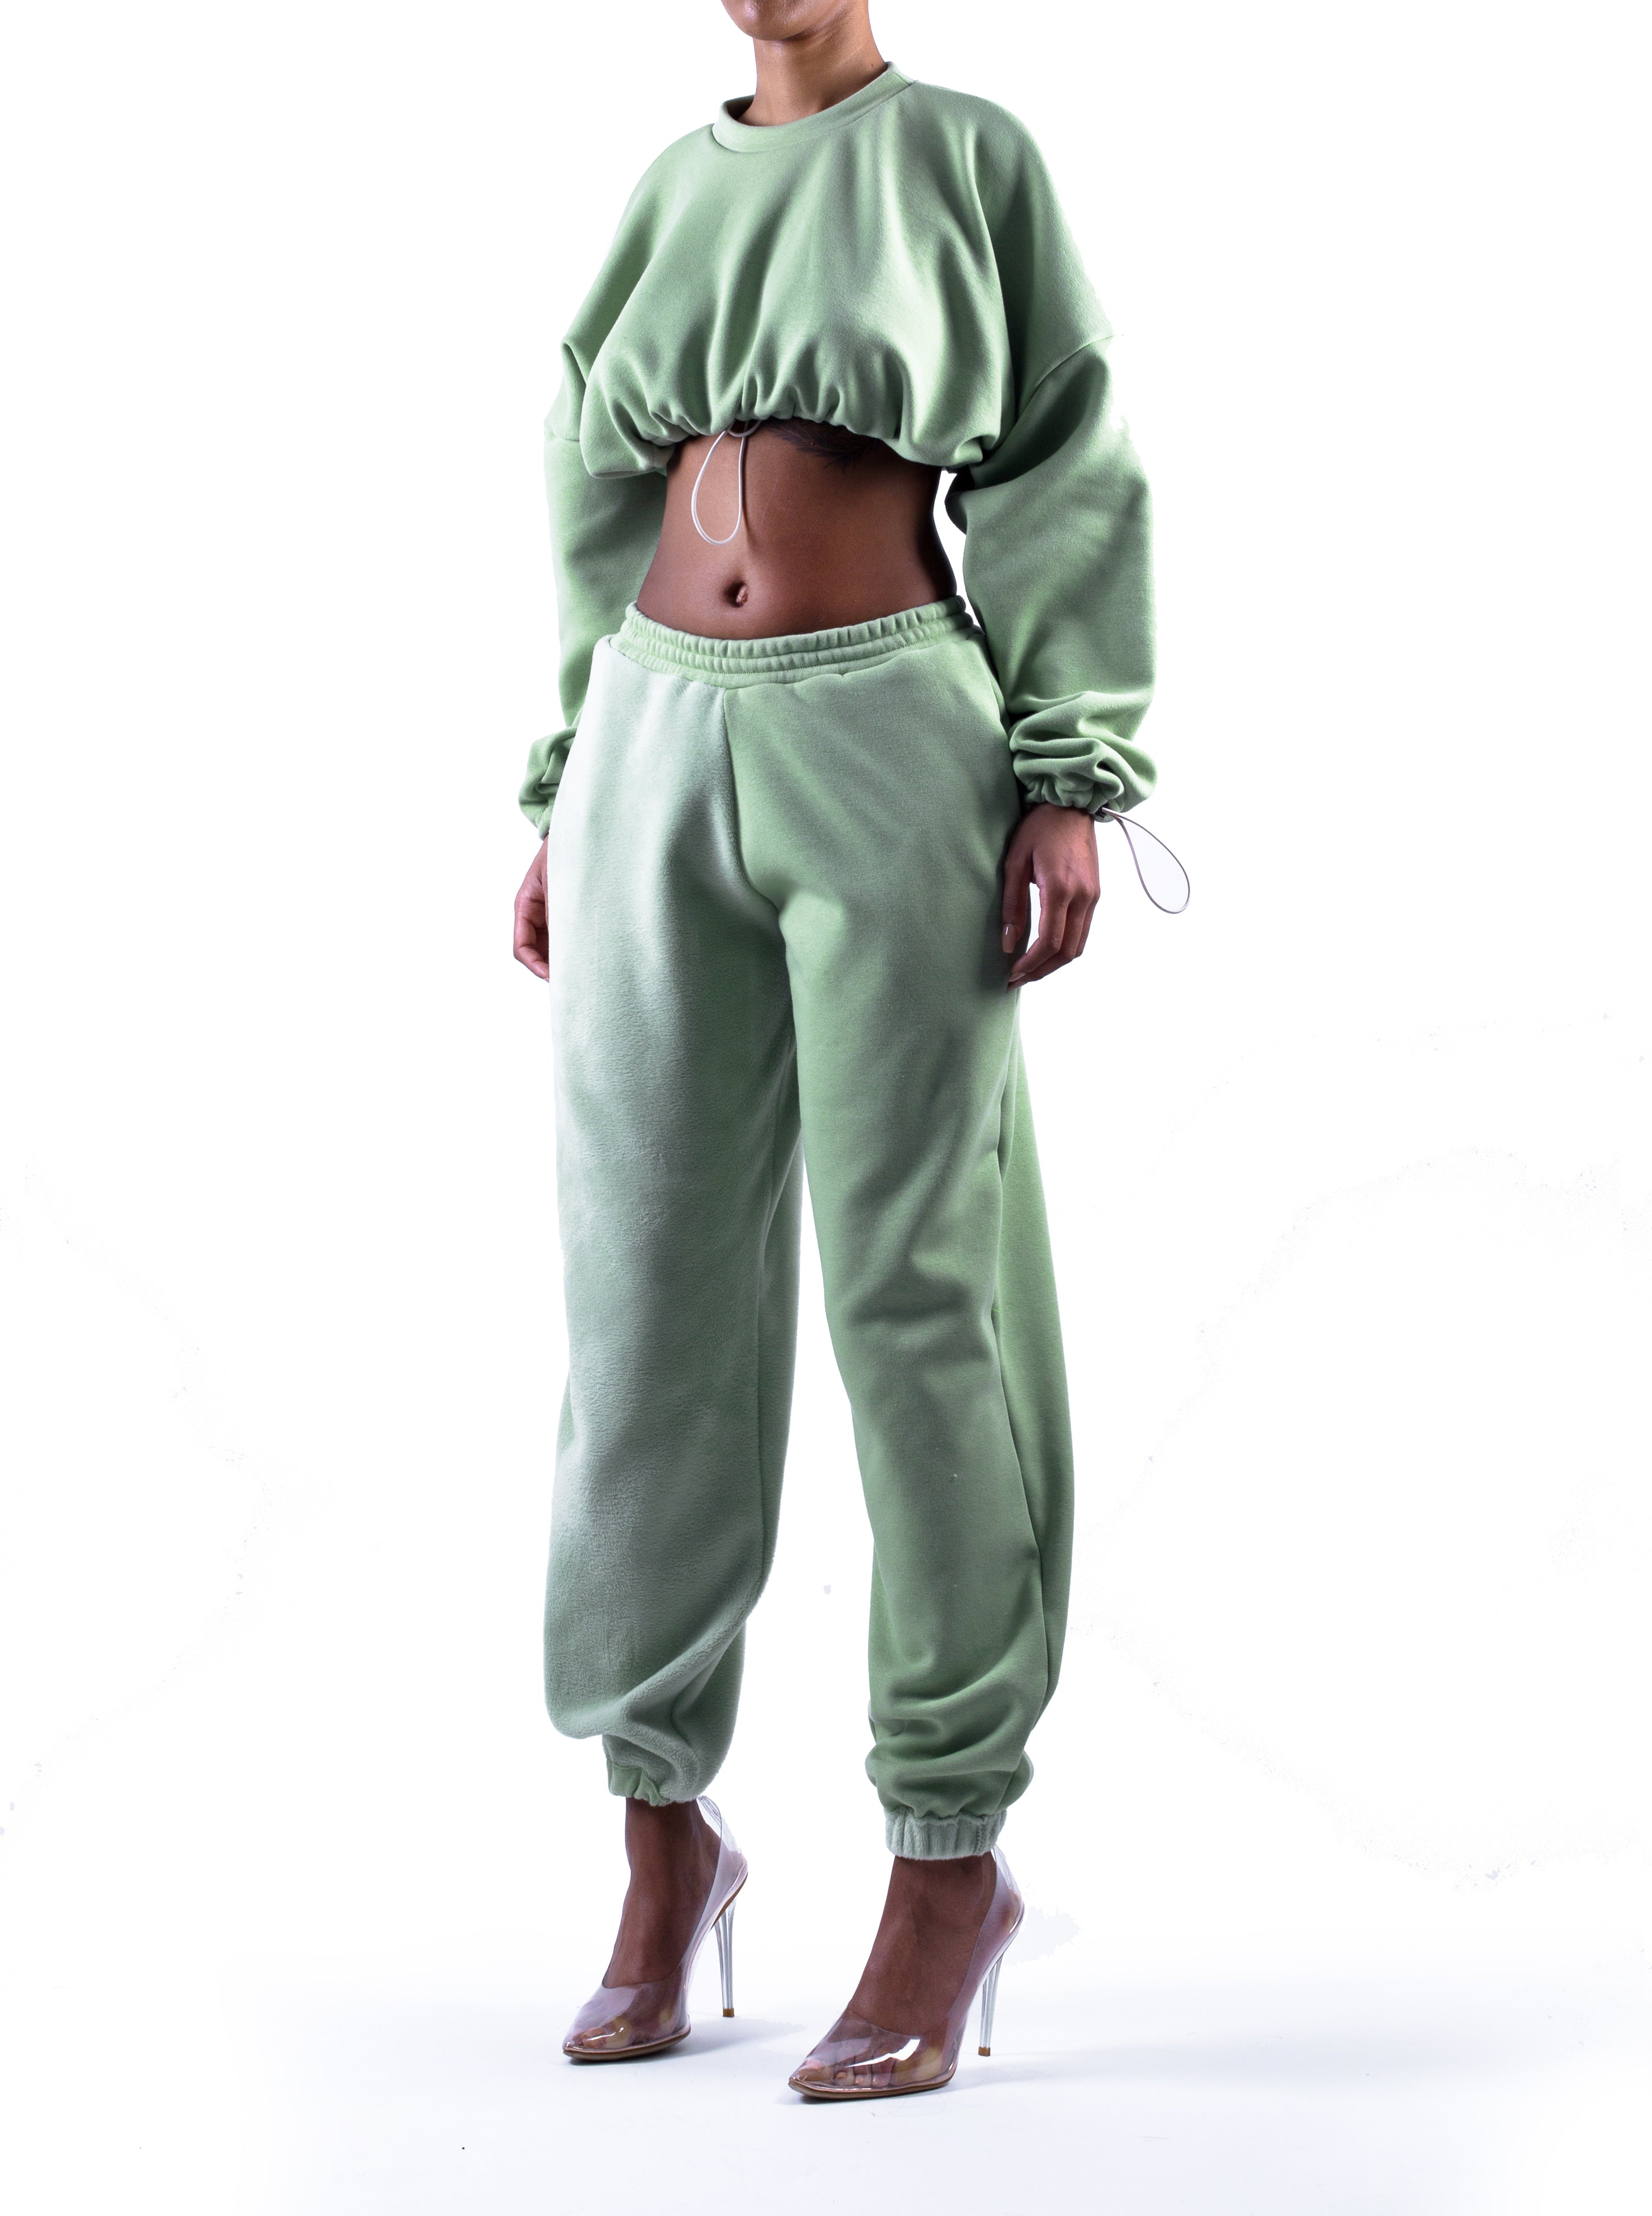 MATCHA Panelled Sweat Pants in Pistachio